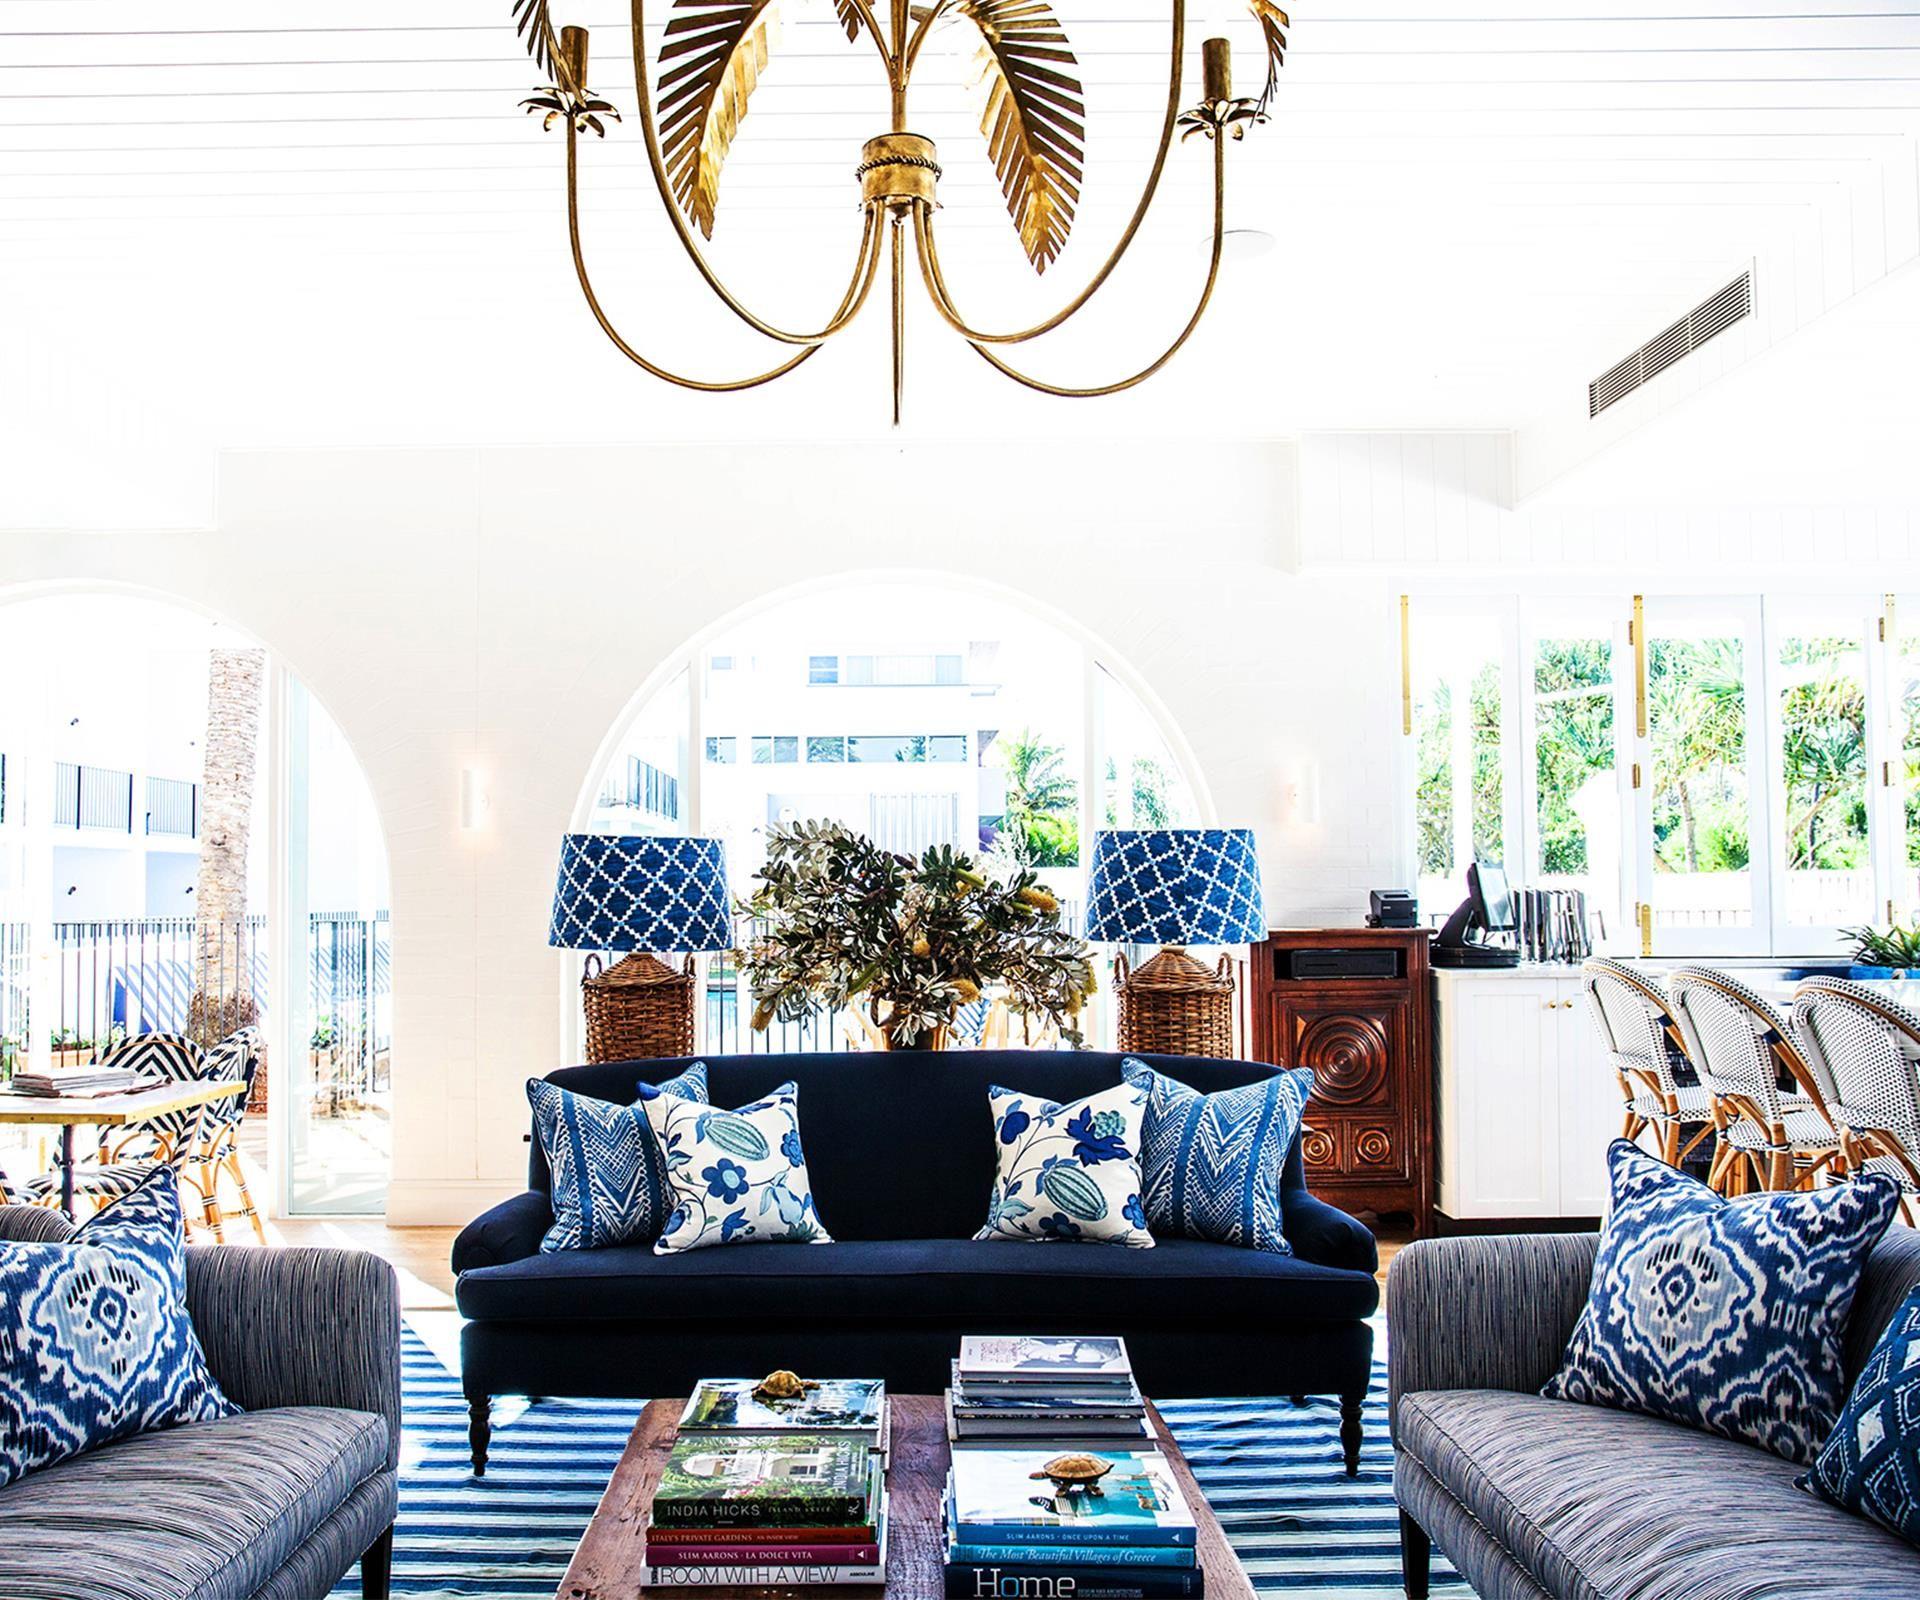 Halcyon House Beachside Hotel | Living room ideas, Room ideas and ...